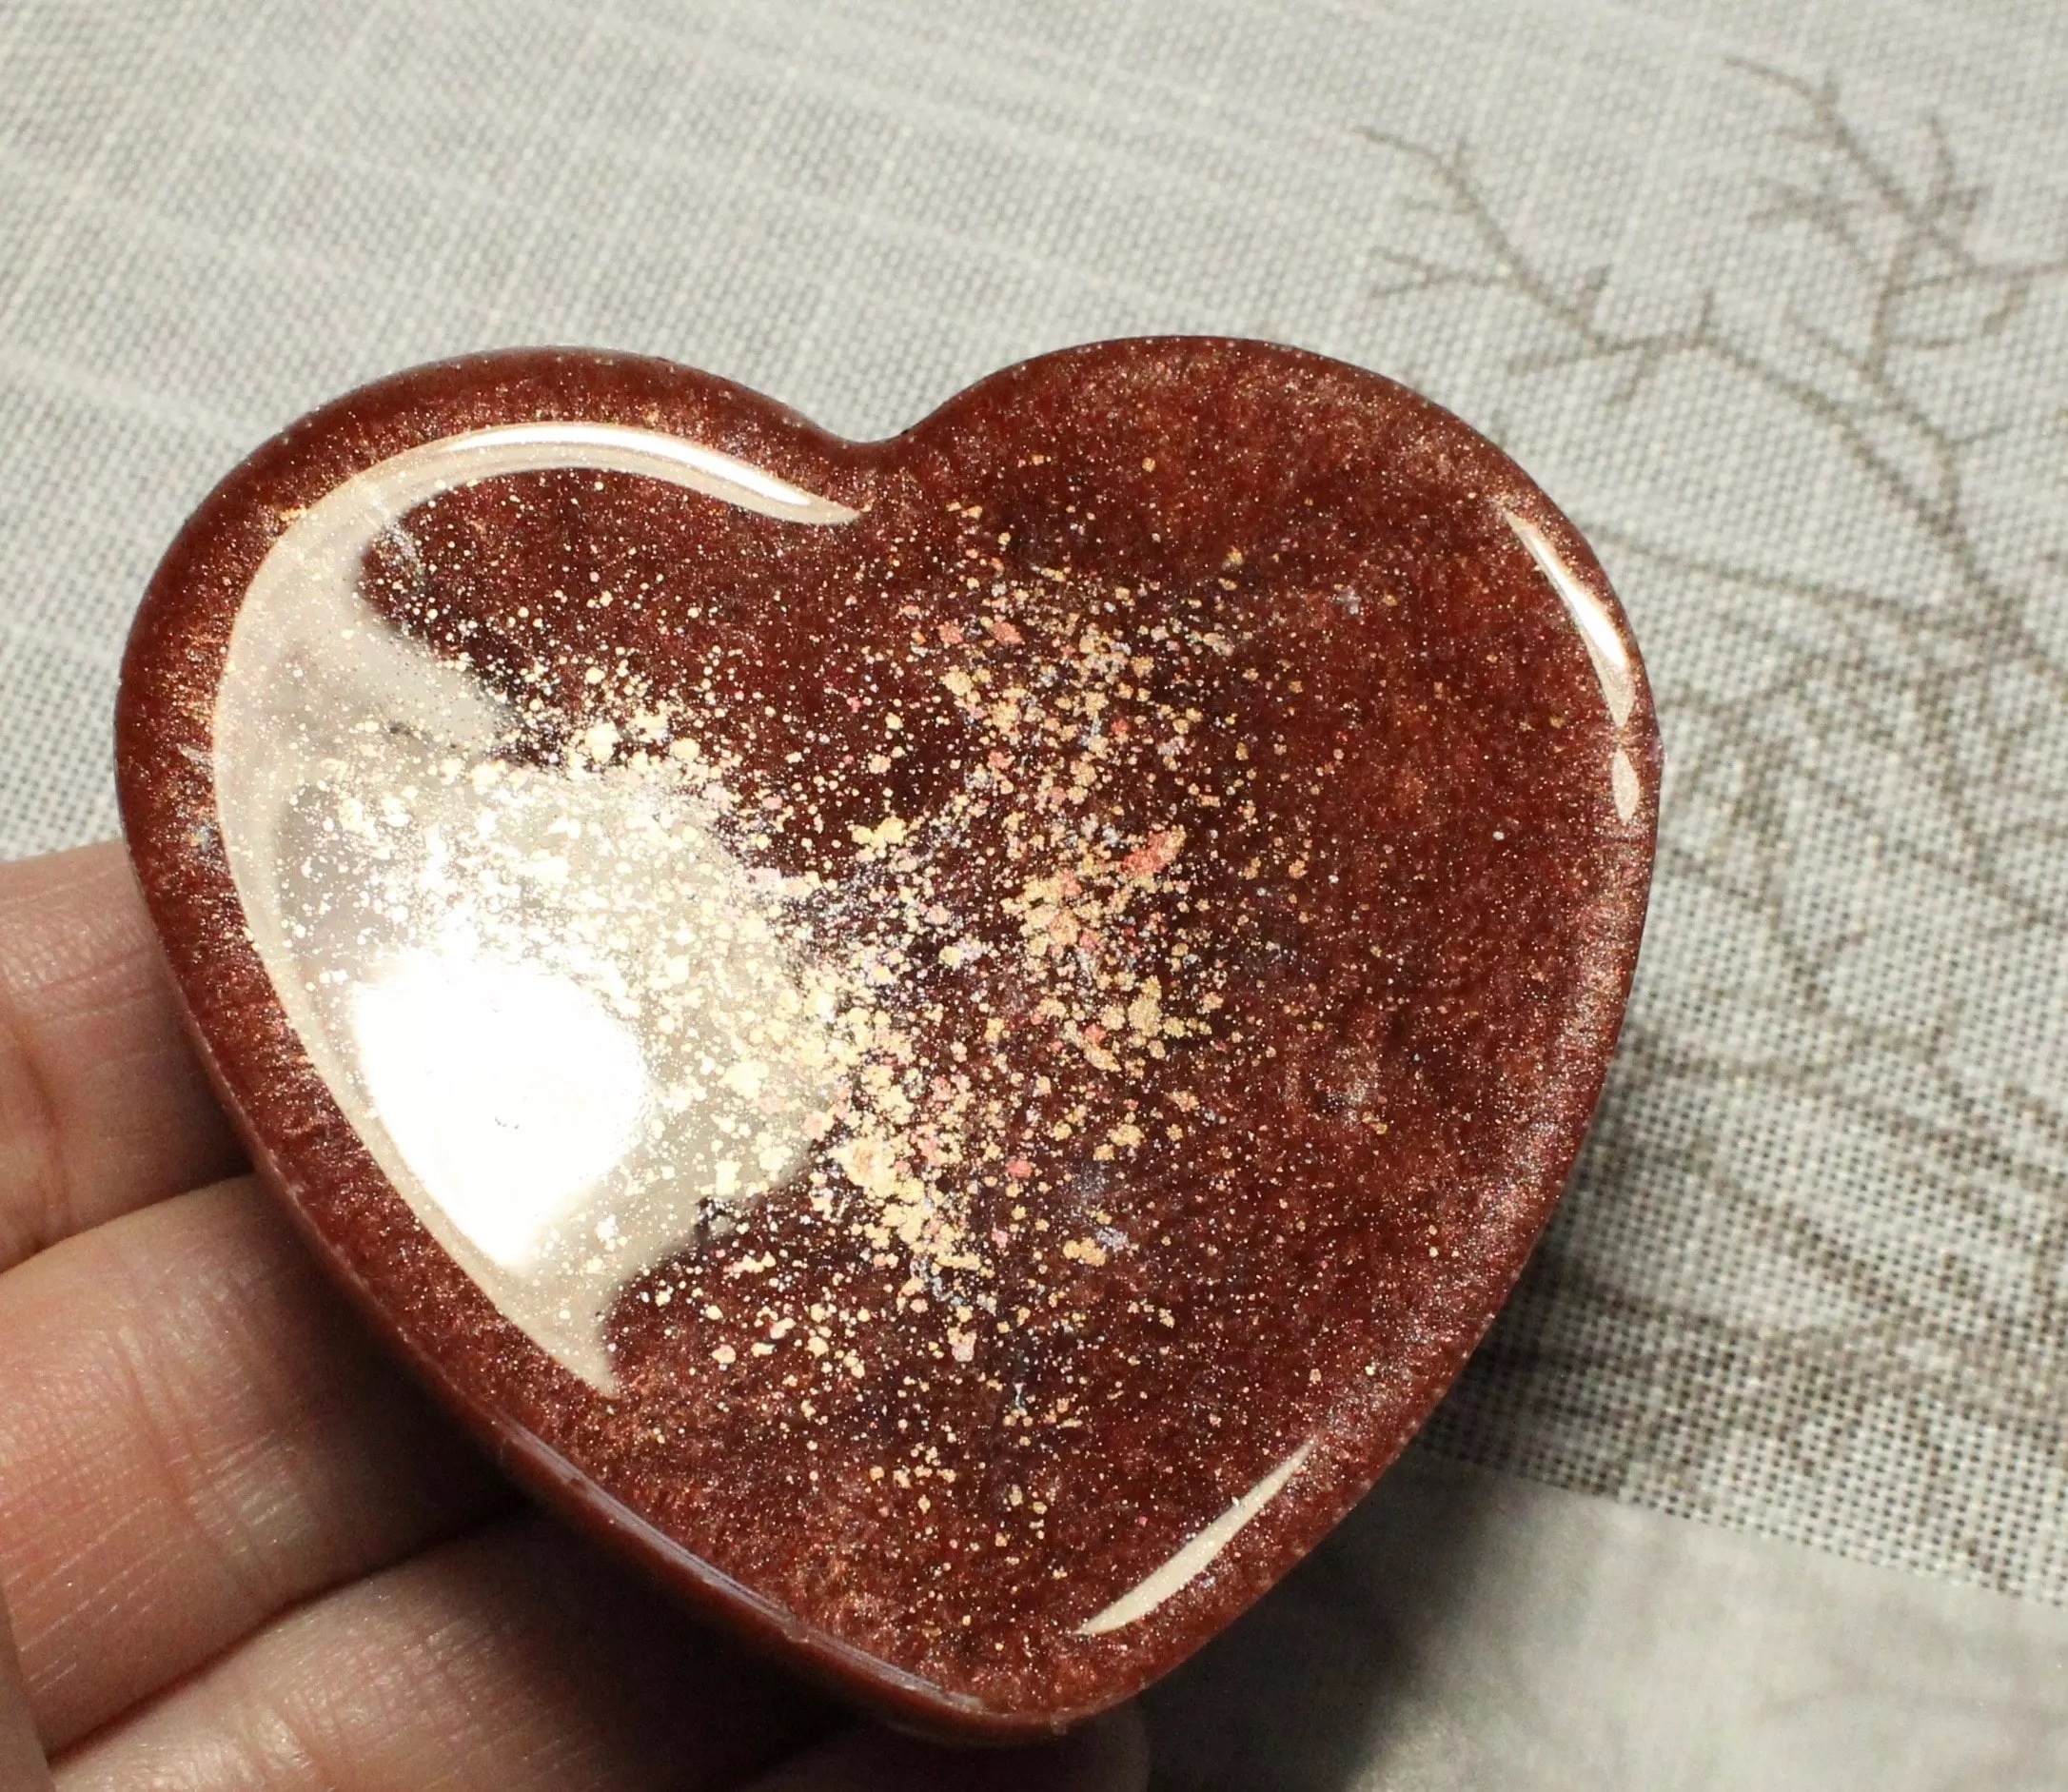 Pearl Ex Powdered Pigments bronze and gold heart back side